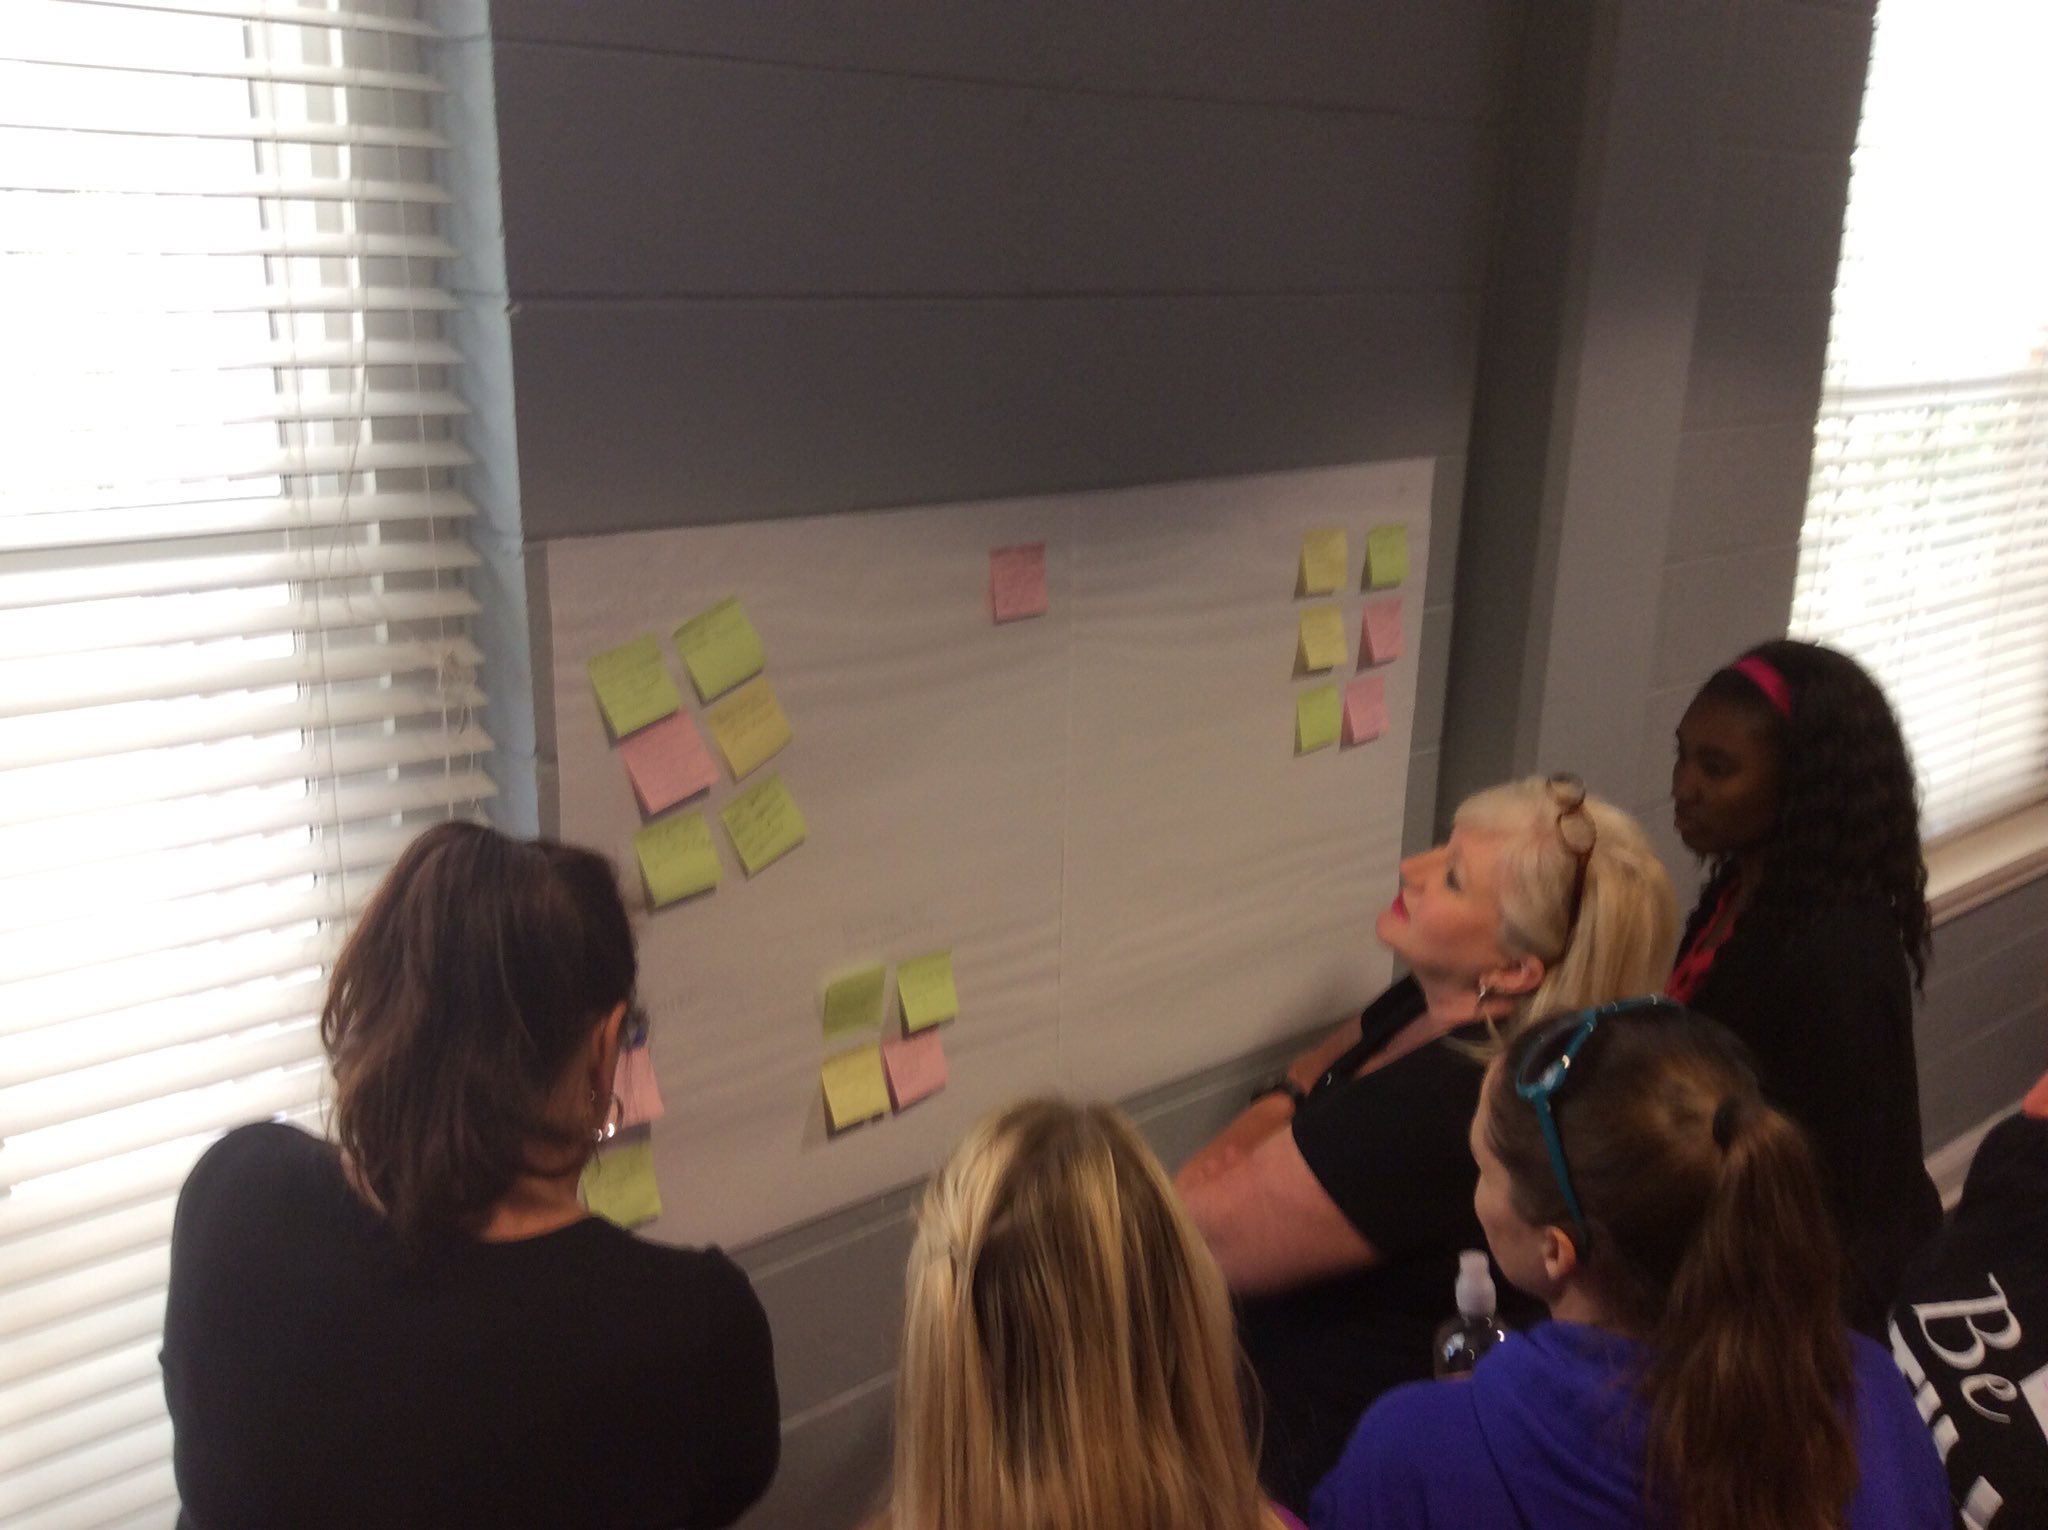 #MiM #cobbia Gallery Walk. The WHY and HOW https://t.co/mrhc7Pwy11